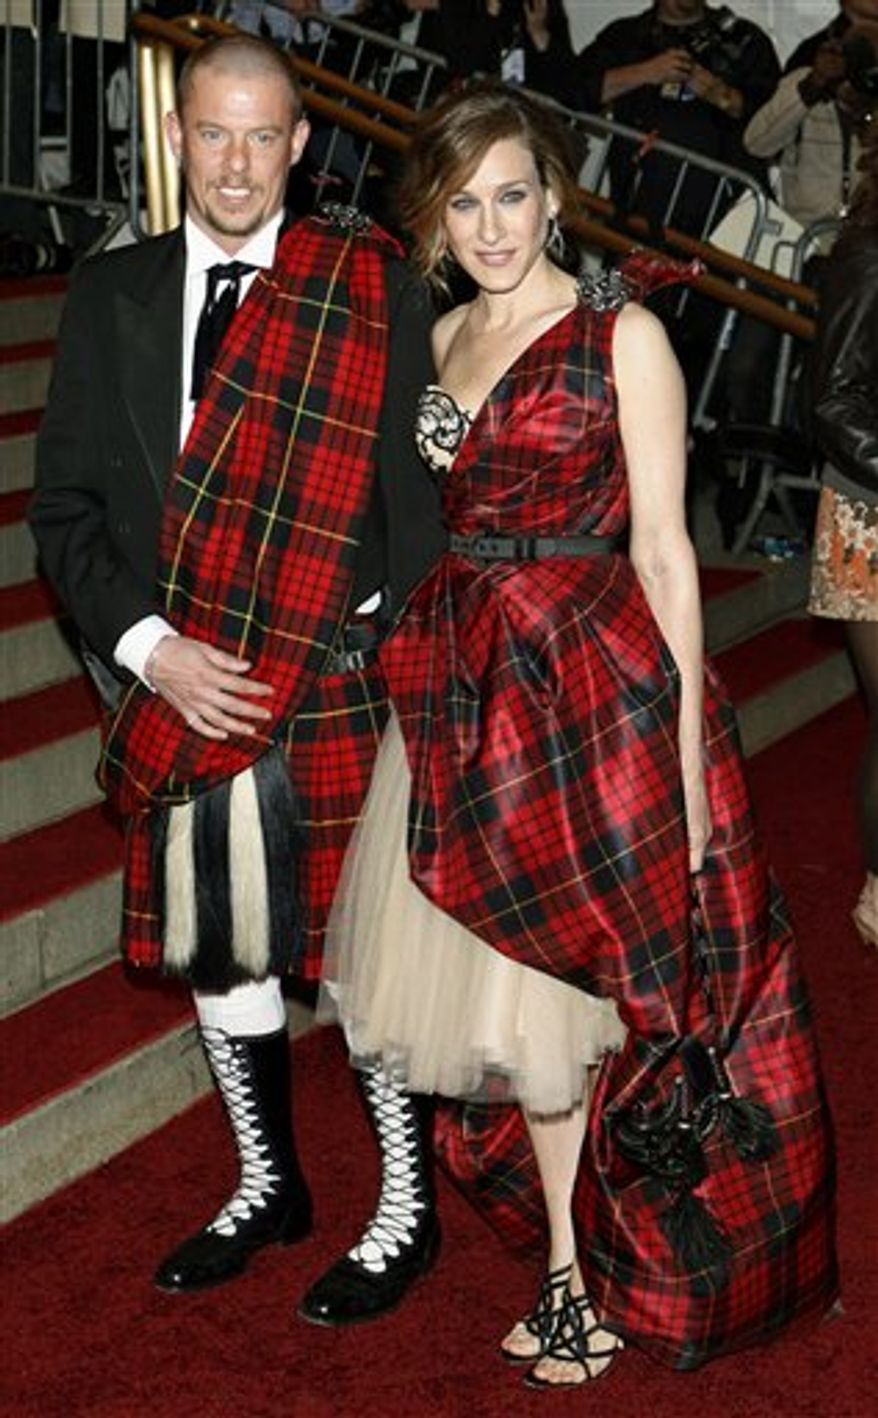 In this Monday, May 1, 2006 file picture, designer Alexander McQueen poses with Sarah Jessica Parker during arrivals at the Costume Institute Gala at the Metropolitan Museum of Art in New York. The Costume Institute of The Metropolitan Museum of Art will honor the memory _ and the fashion vision _ of the late designer Alexander McQueen through a retrospective exhibit in 2011. (AP Photo/Stuart Ramson)